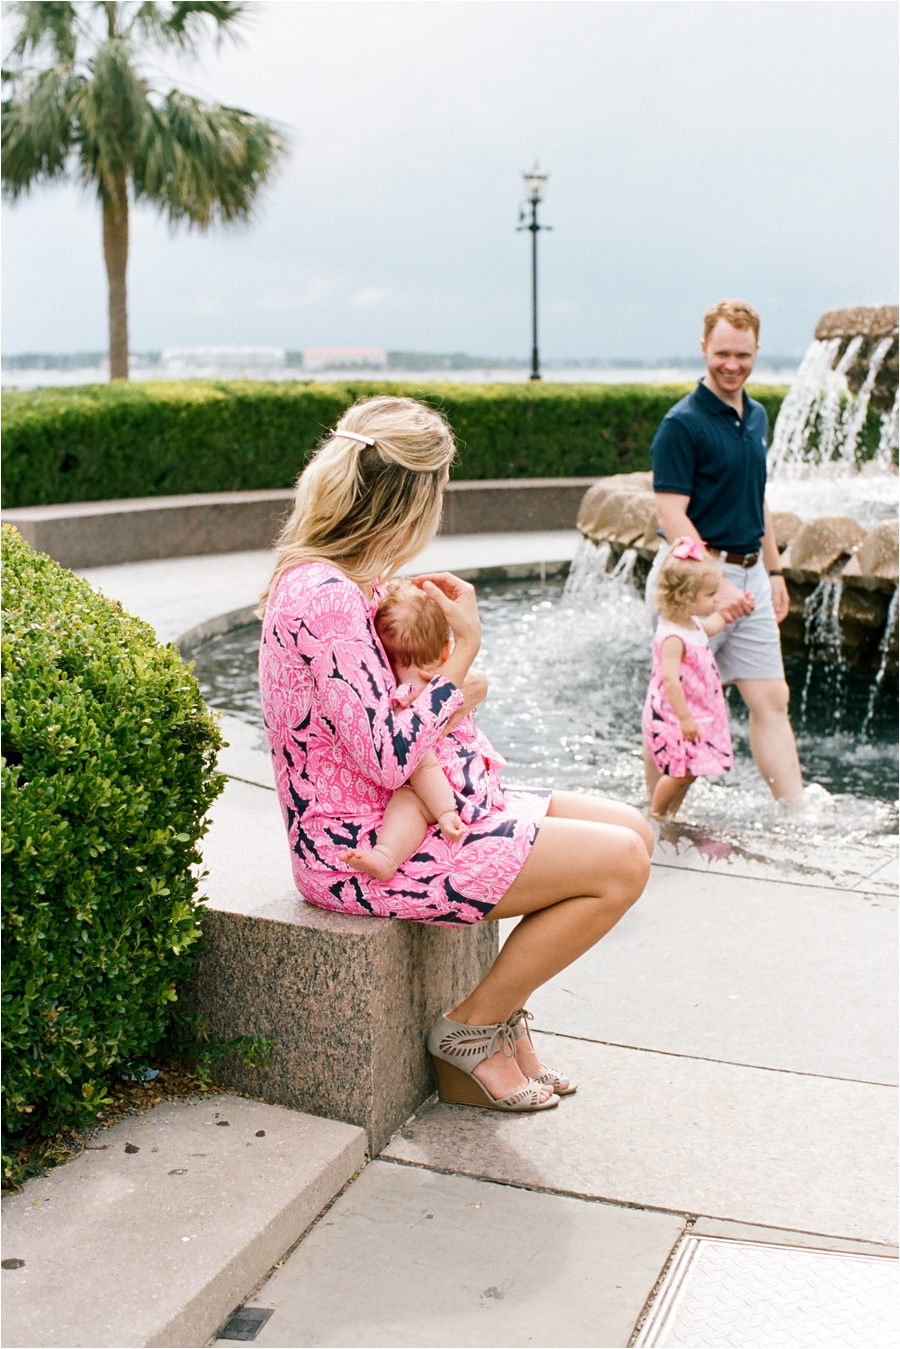 lilly pulitzer southern family session in charleston south carolina by charlottesville photographer, amy nicole photography_0016